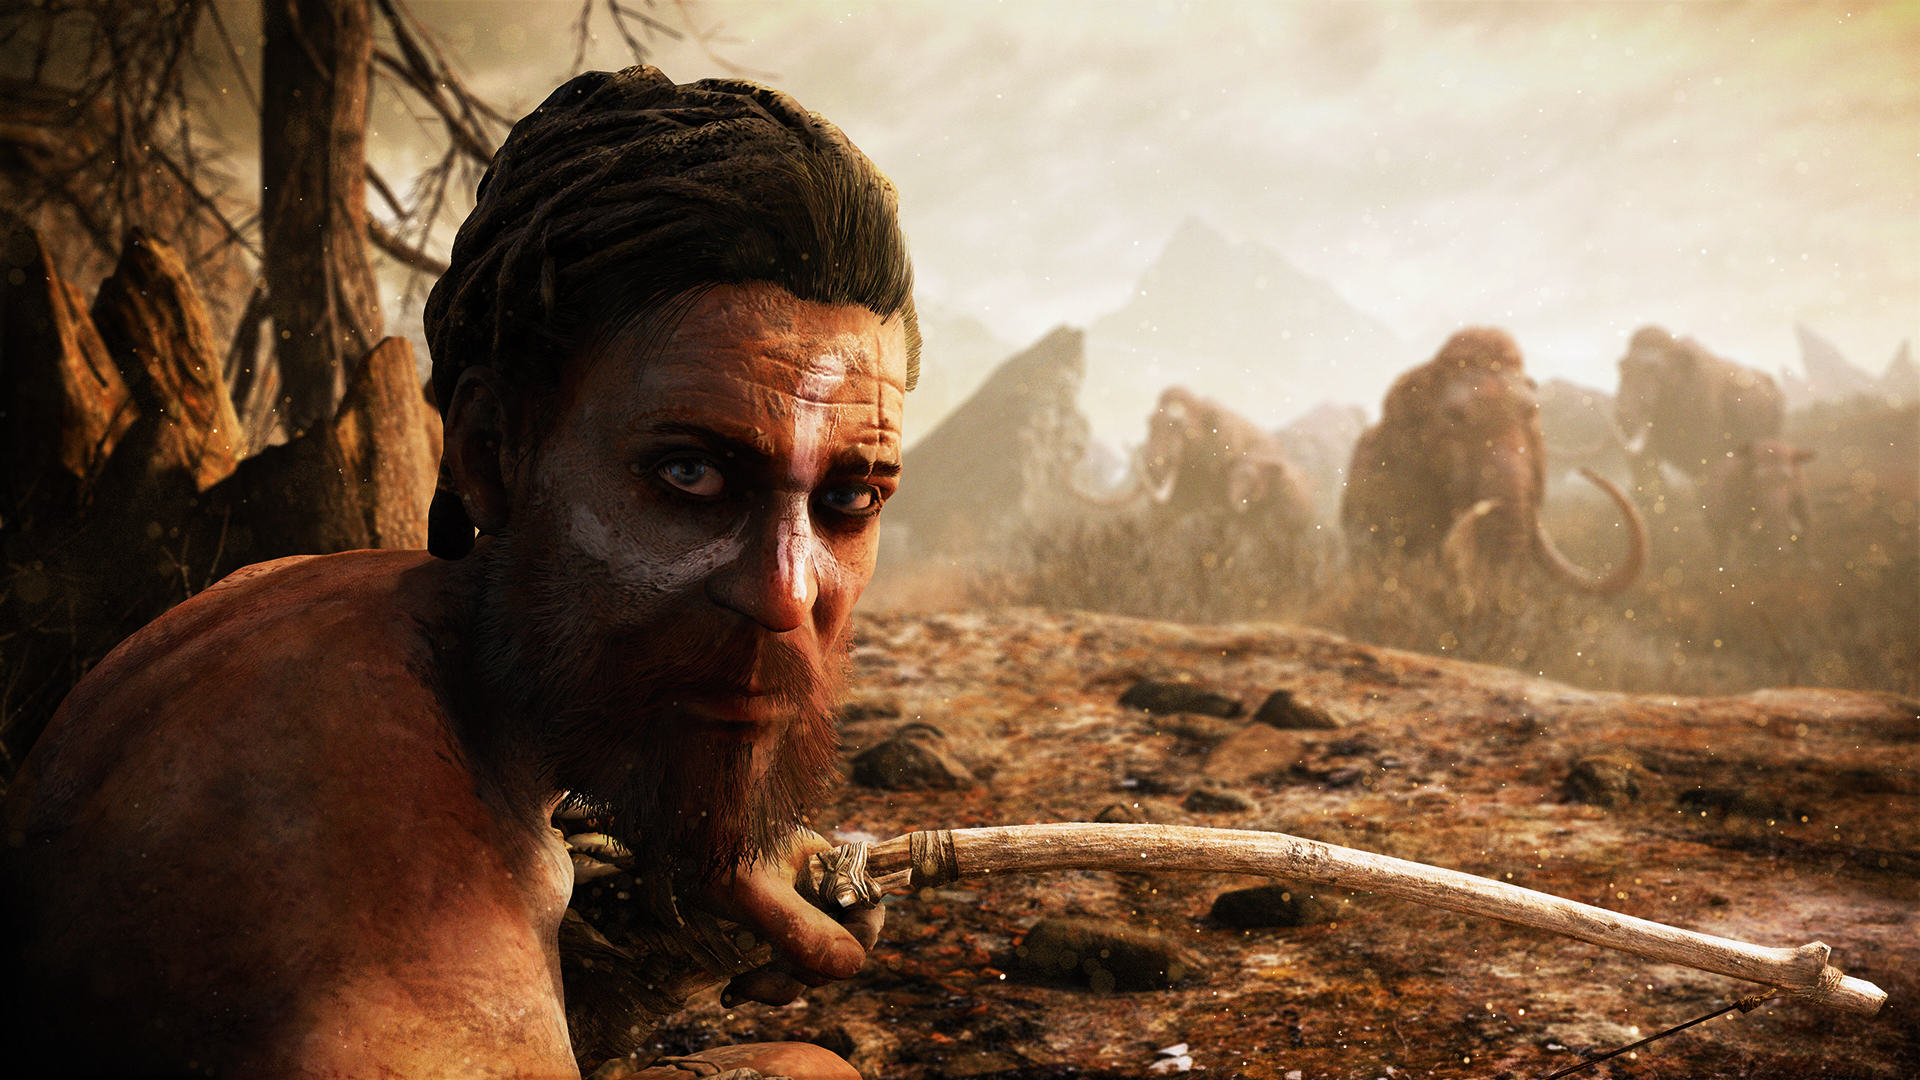 Ubisoft Announce Far Cry Primal With Reveal Trailer And Release Dates UNILAD FCP ANNOUNCE SCREEN 001 EMBARGO OCT 6 9AM PST 14440783337